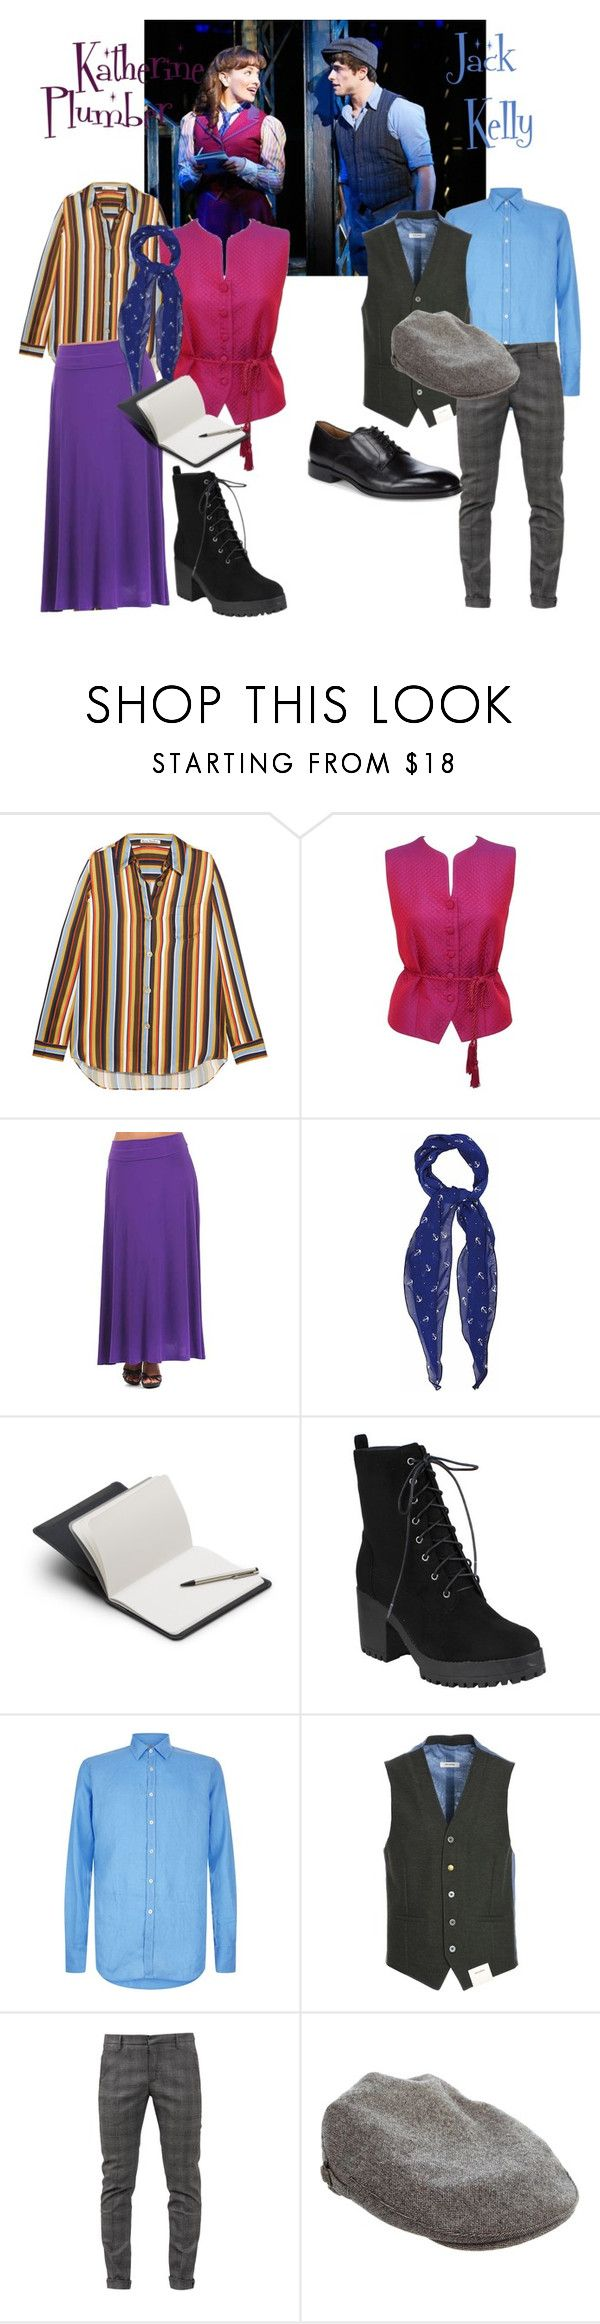 """Contemporary: Newsies"" by rebconnell ❤ liked on Polyvore featuring Acne Studios, Burberry, Avital, Bellroy, Canali, John Sheep, Dondup, Philip Treacy, Allen Edmonds and contemporary"